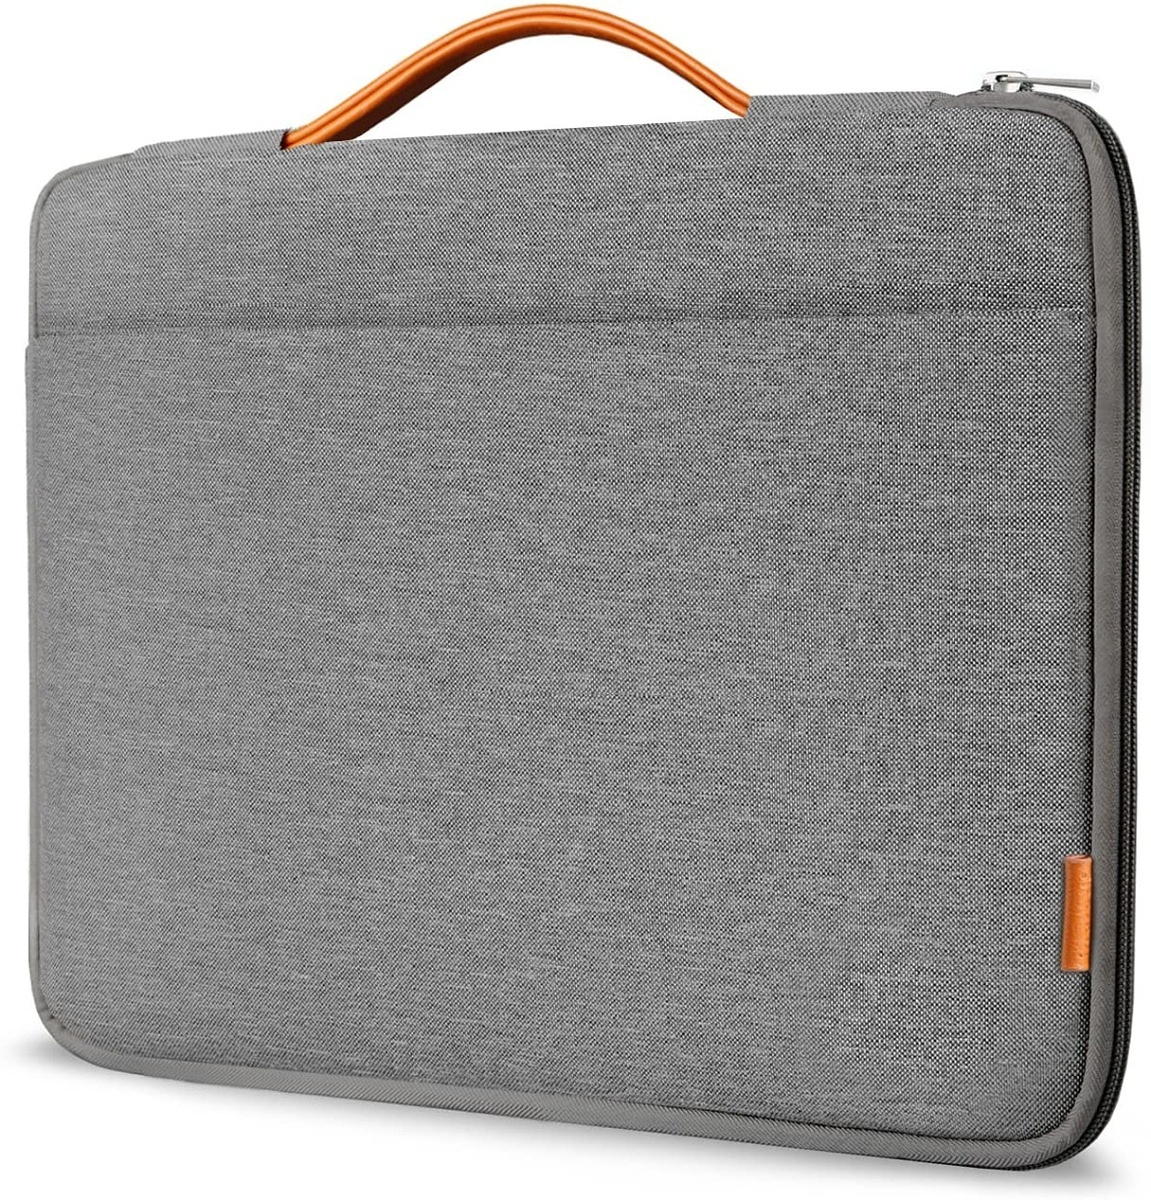 Inateck Laptop Sleeve Case